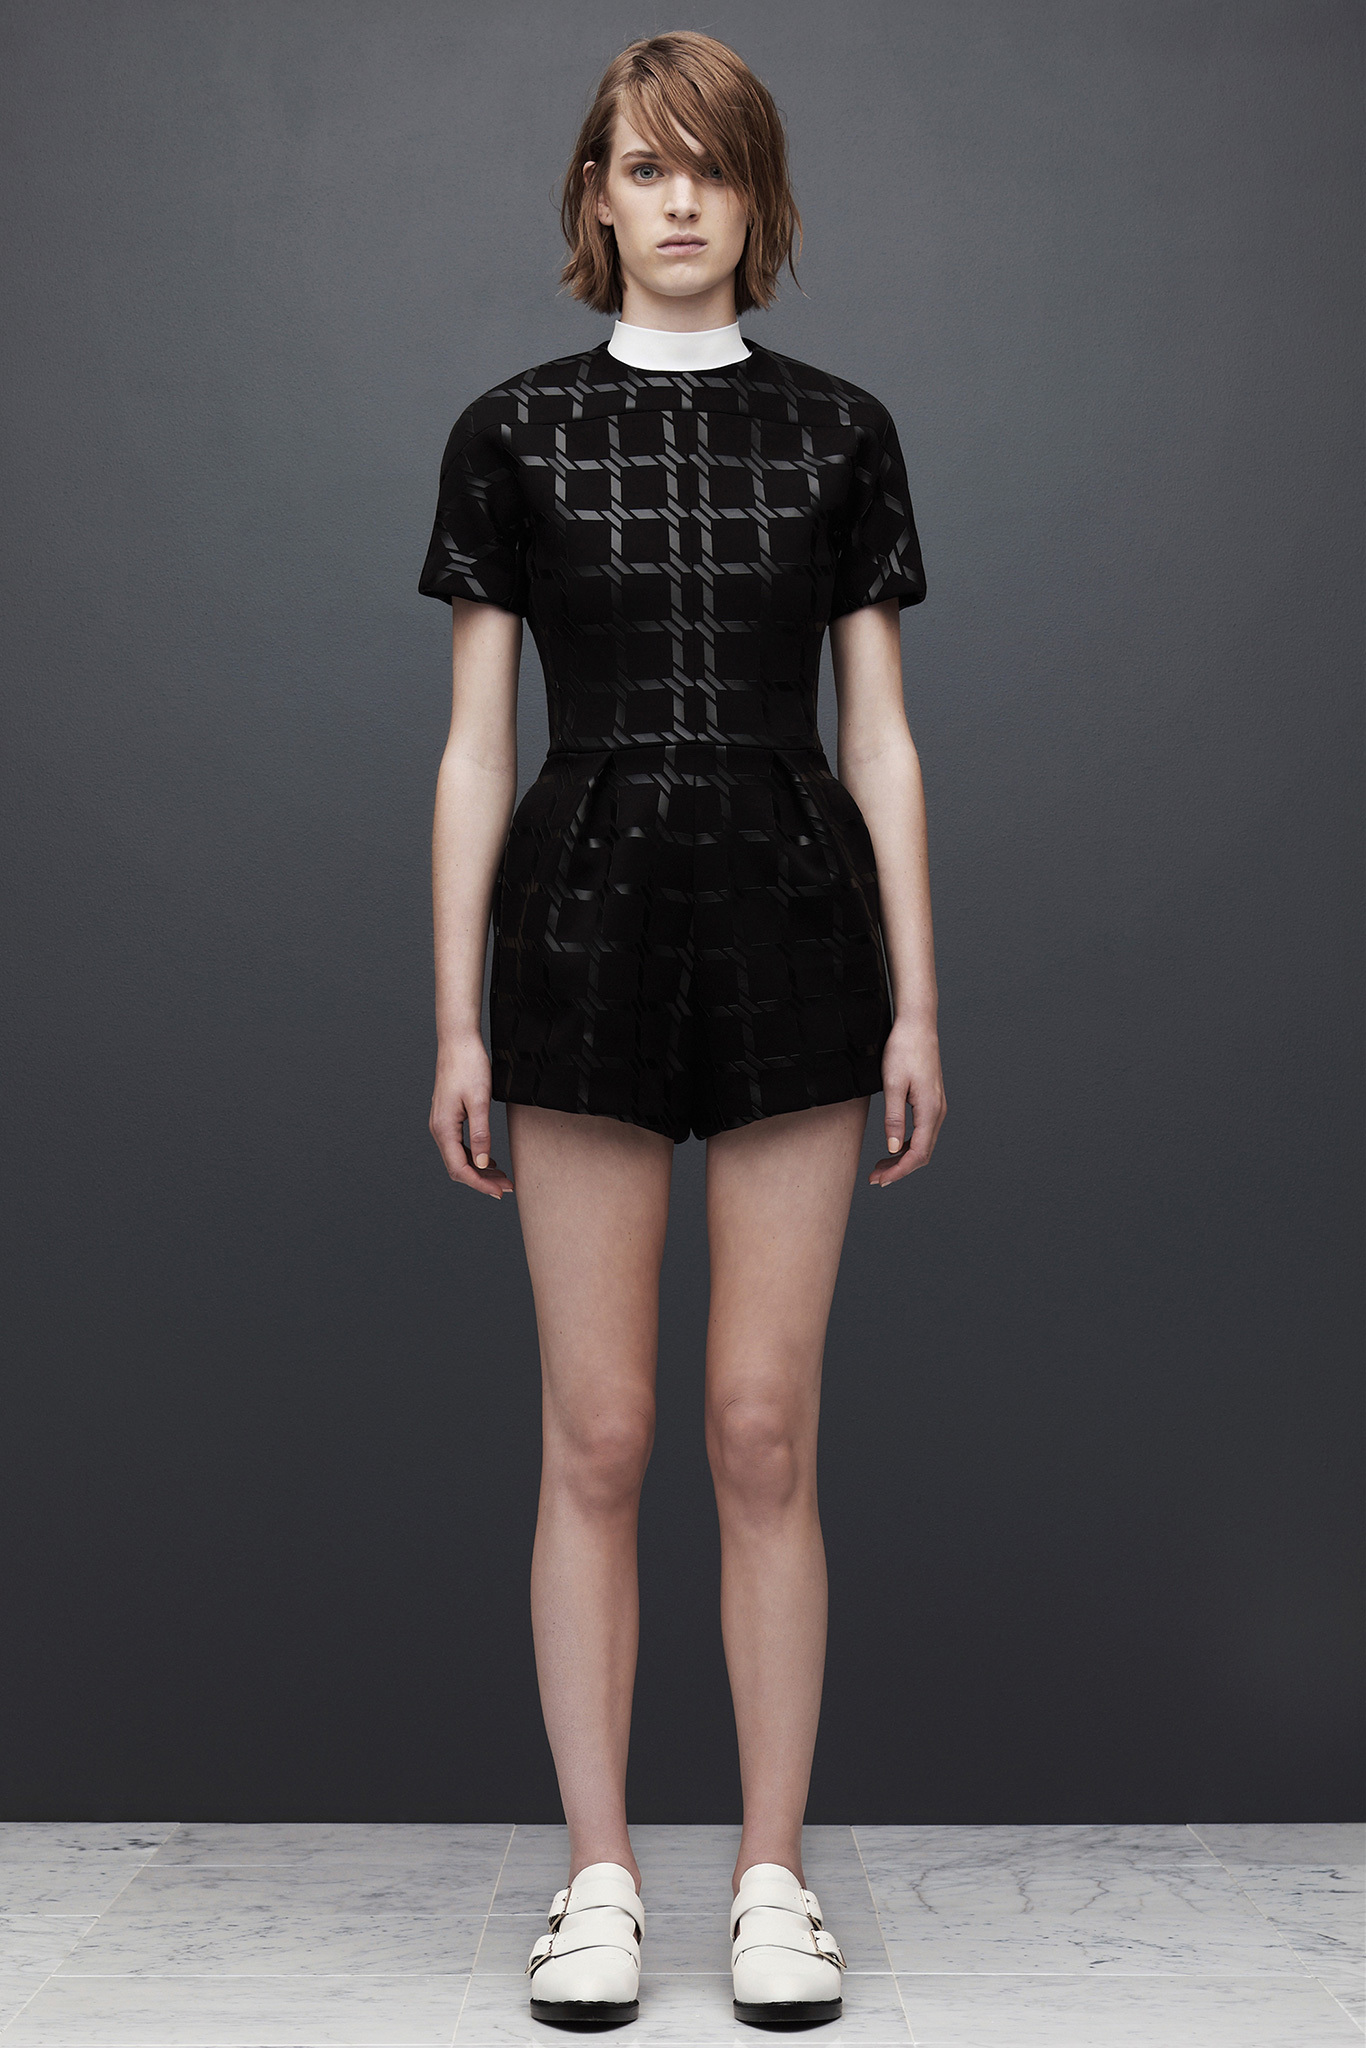 T by Alexander Wang 2014 Resort Collection